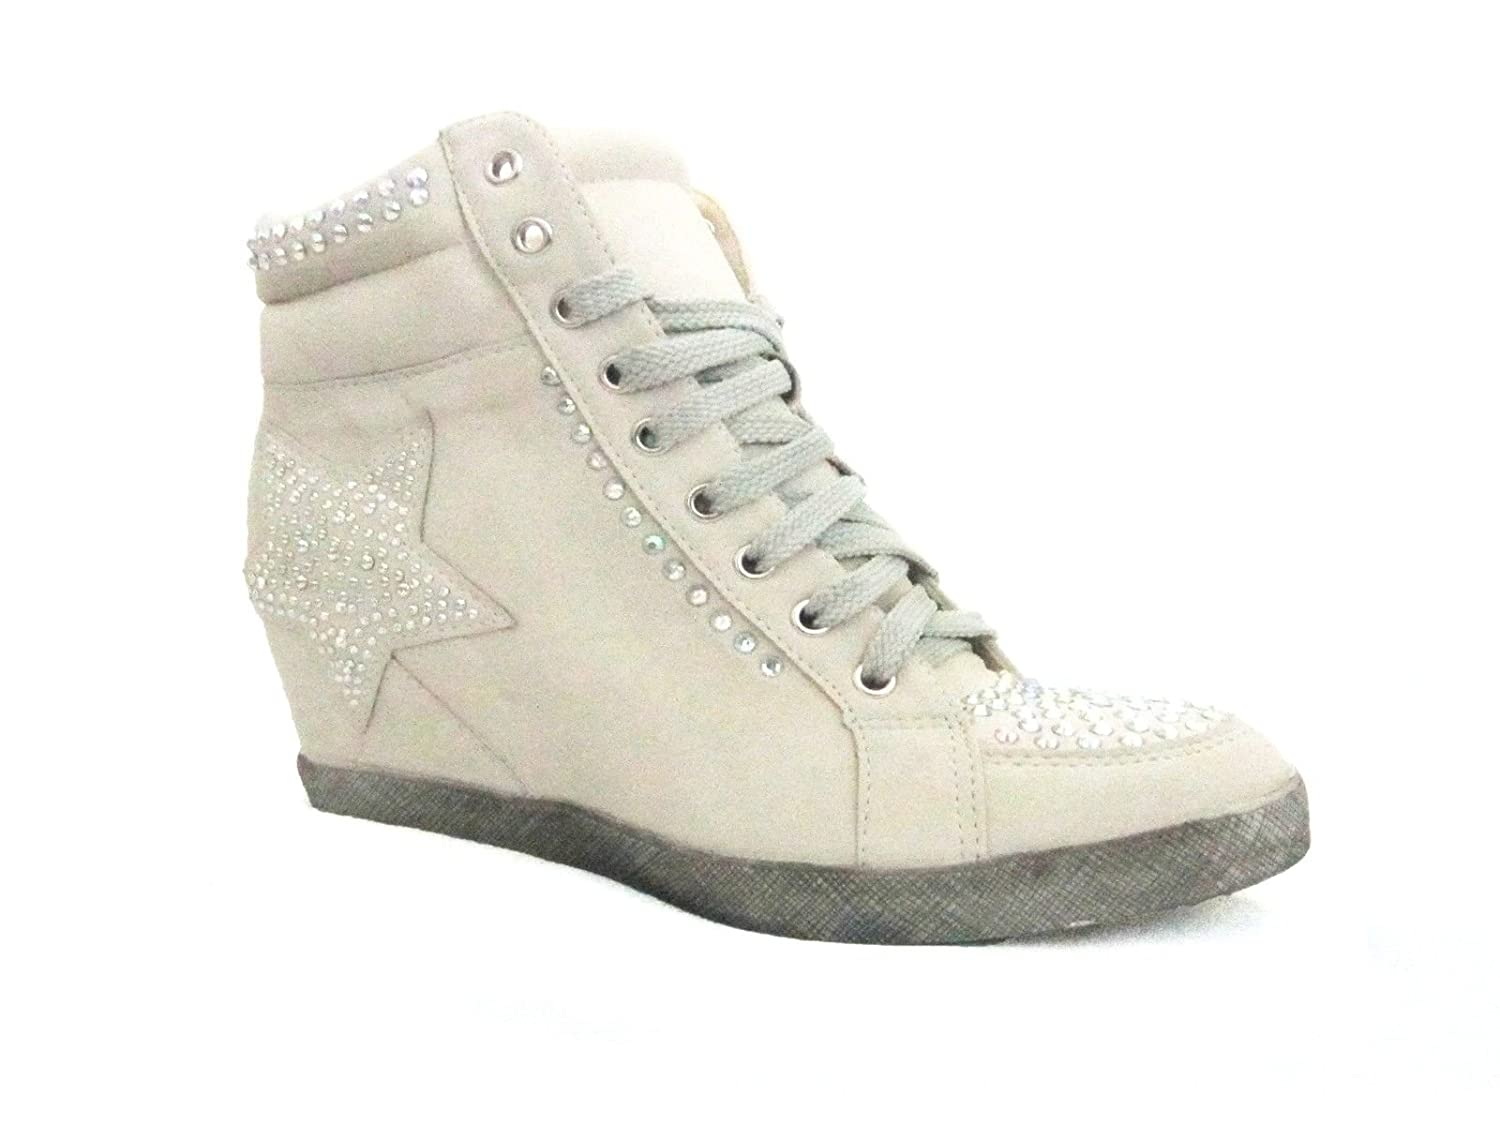 WOMENS LADIES HI TOP SNEAKERS TRAINERS PADDED TONGUE PLIMSOLLS ANKLE BOOTS SHOES